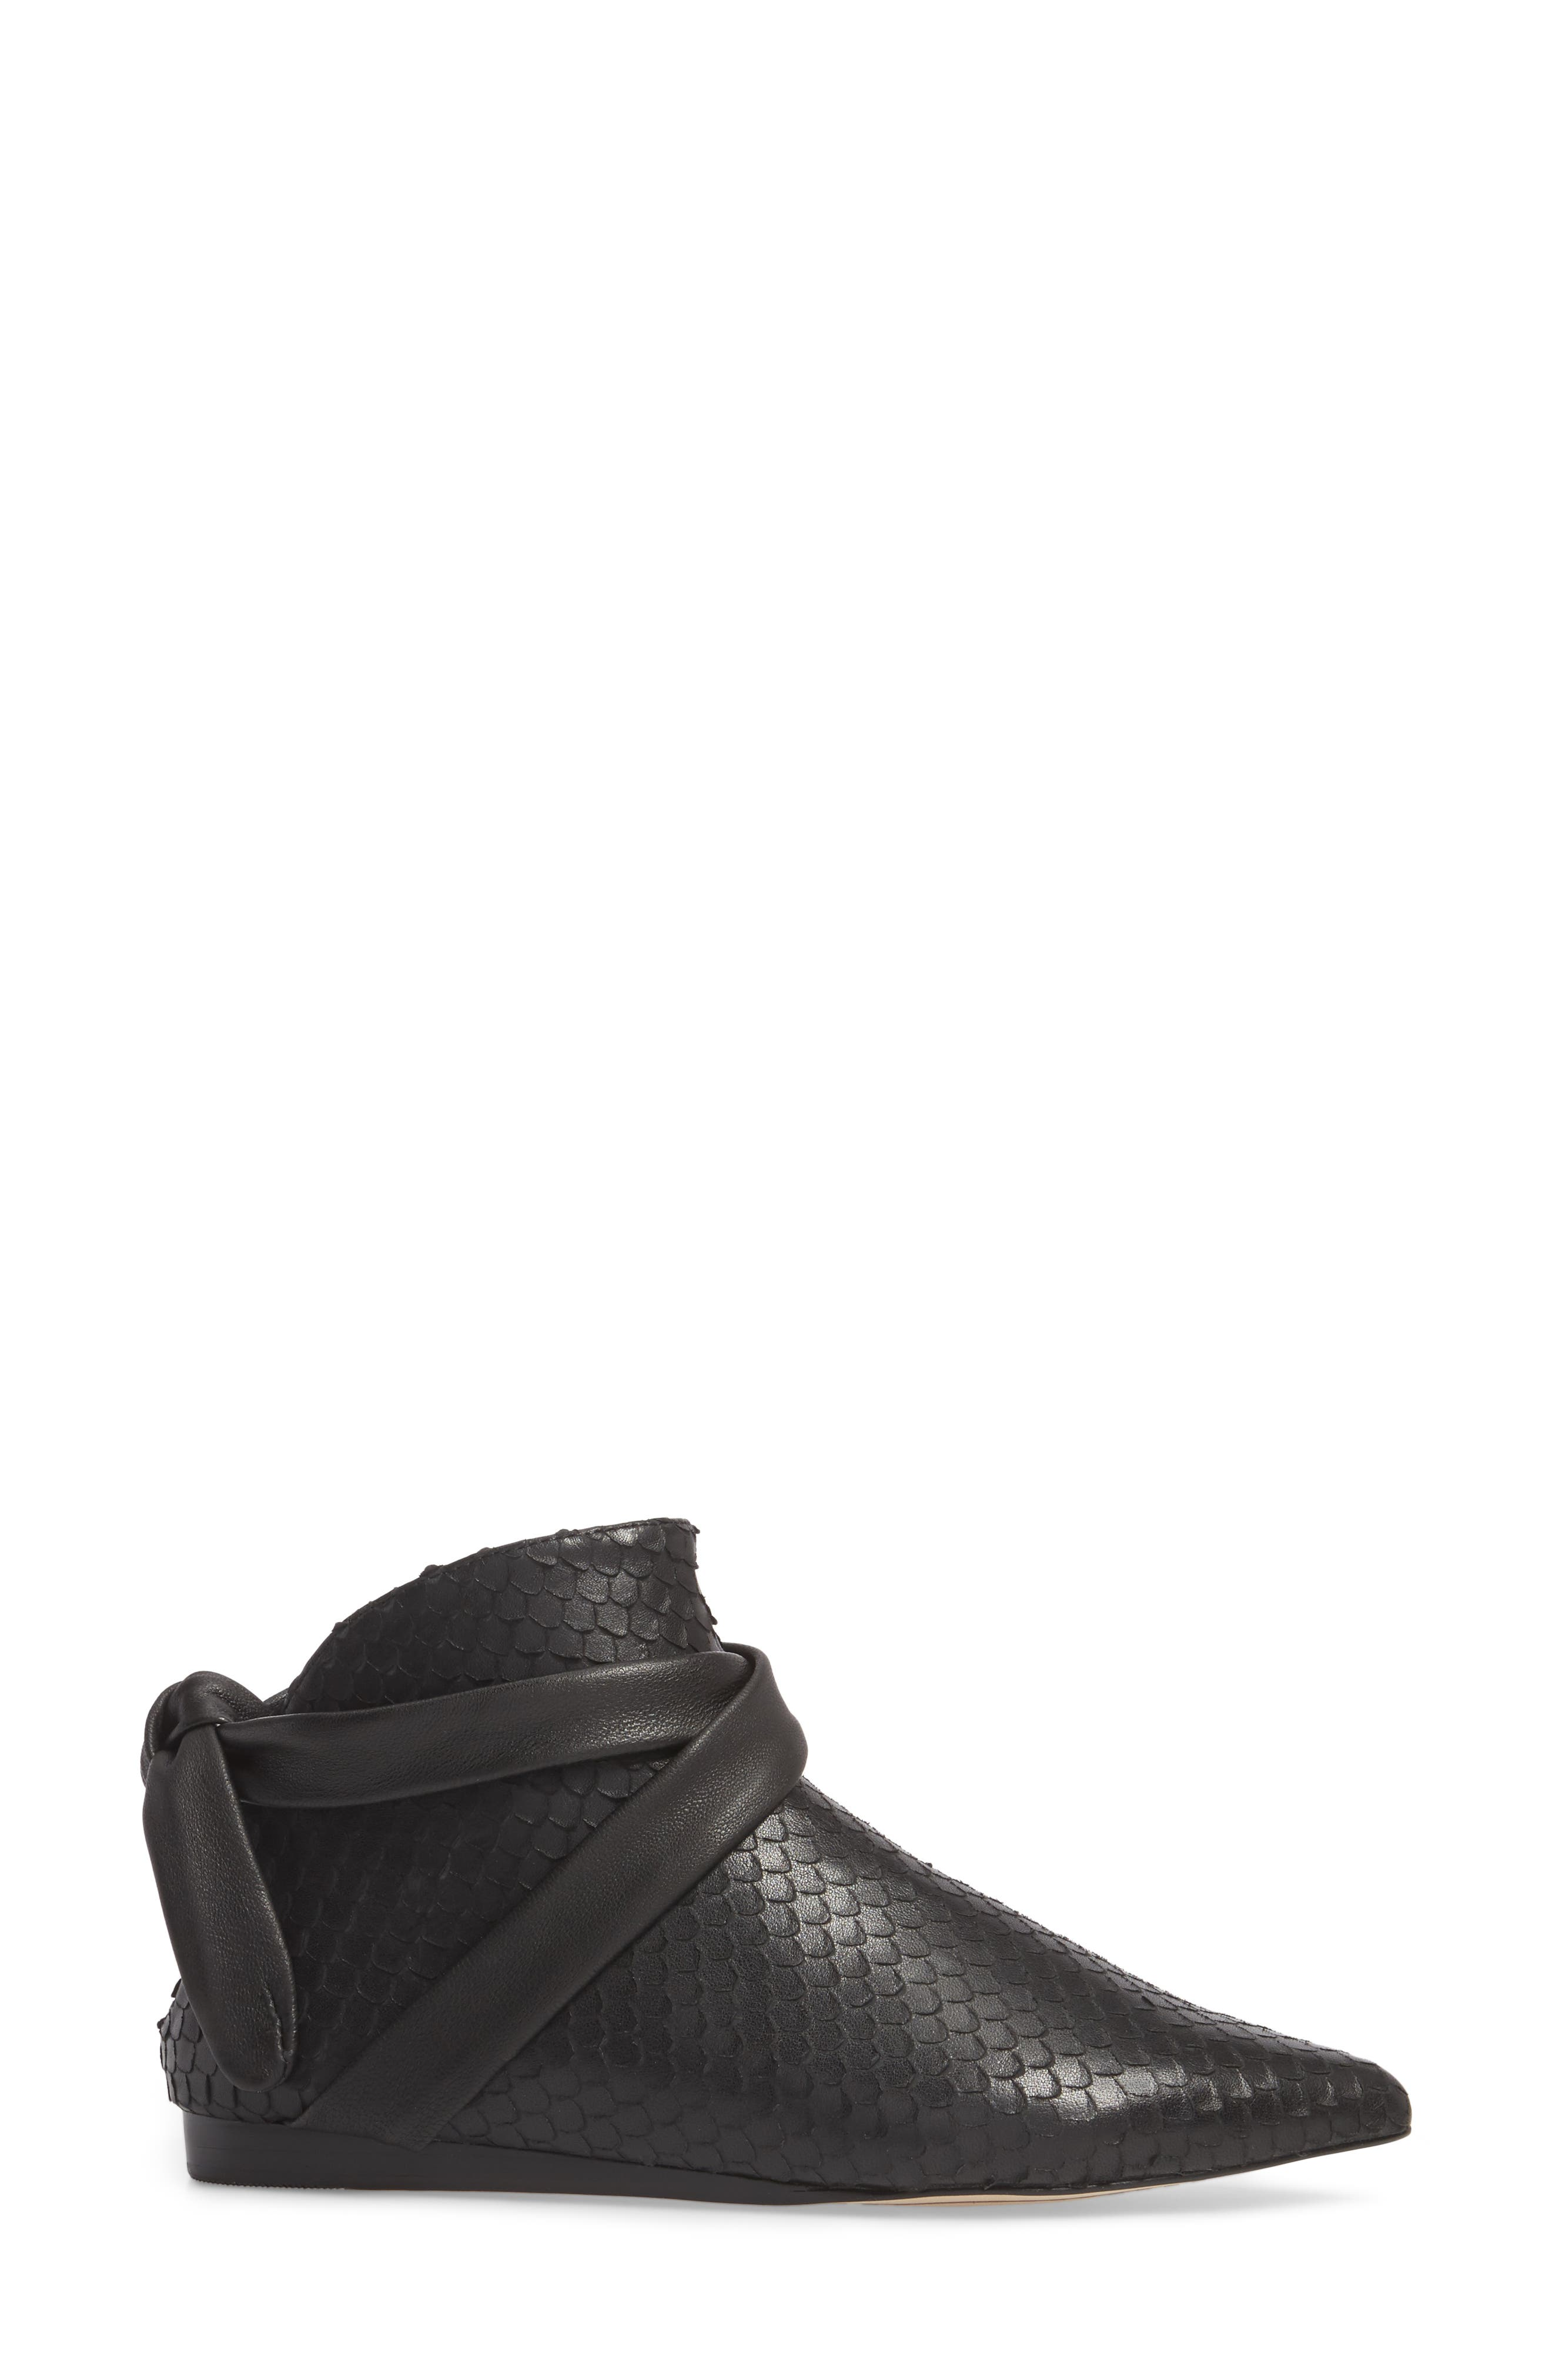 M4D3 Derby Bootie,                             Alternate thumbnail 3, color,                             Black Leather